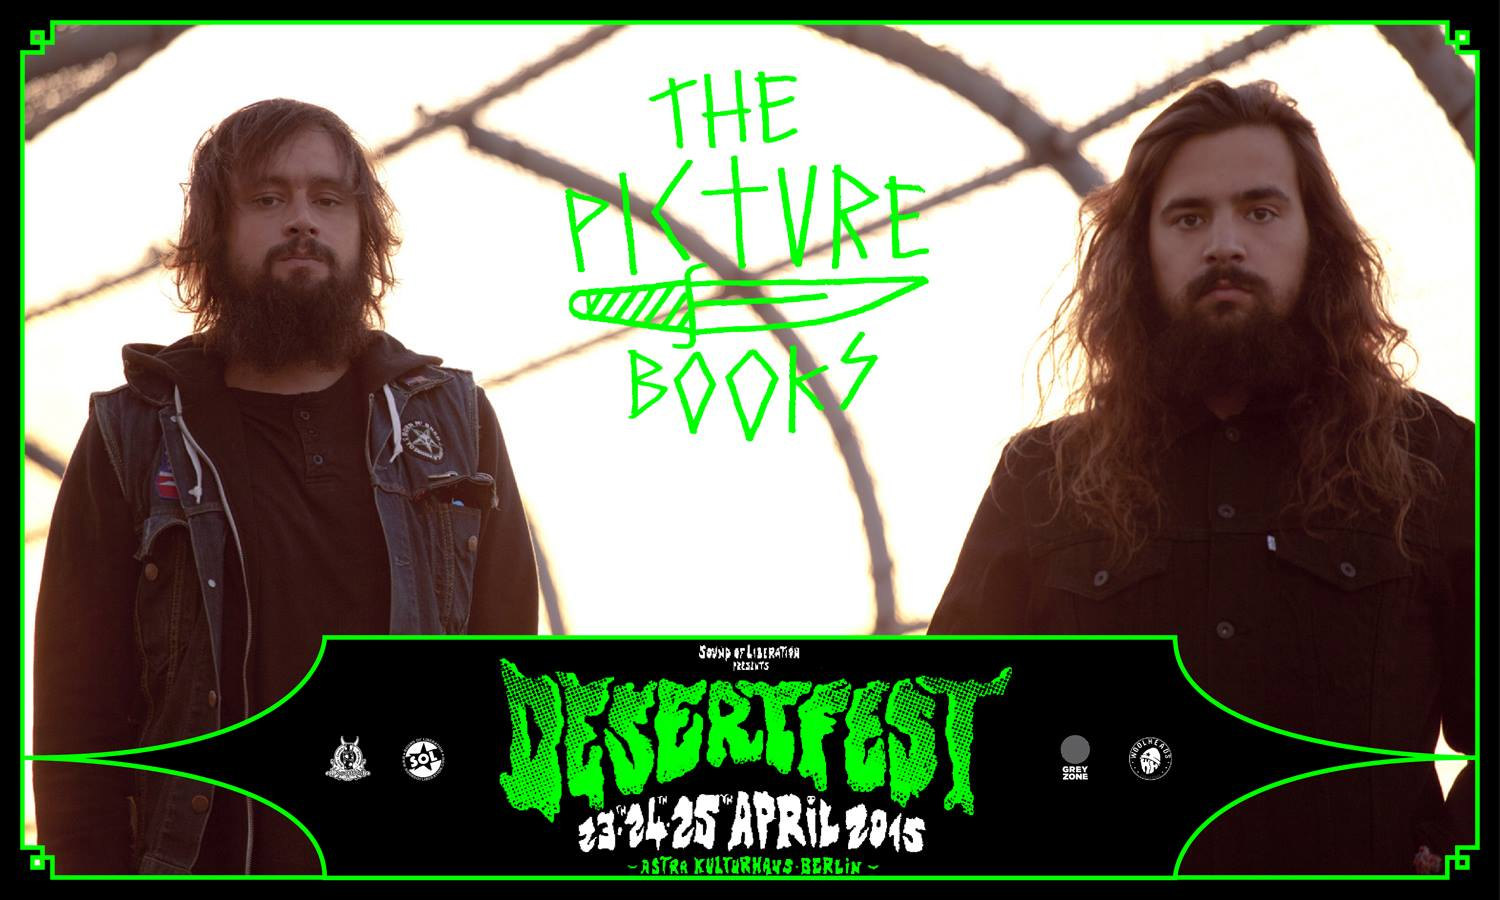 the picturebooks desertfest berlin 2015